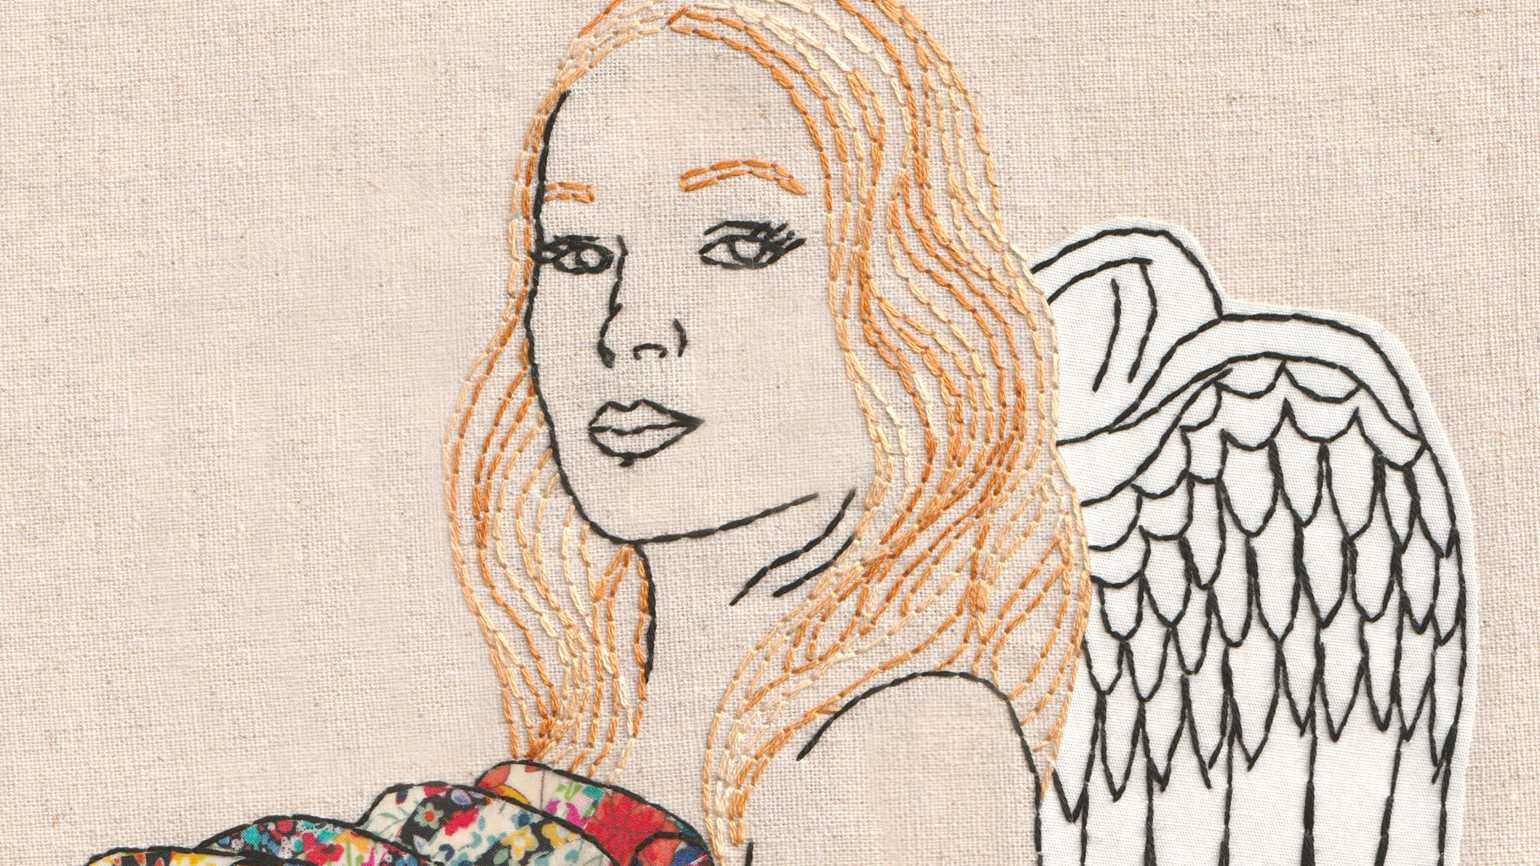 An artist's rendering of a quilted angel holding colorful, patterned quilts.